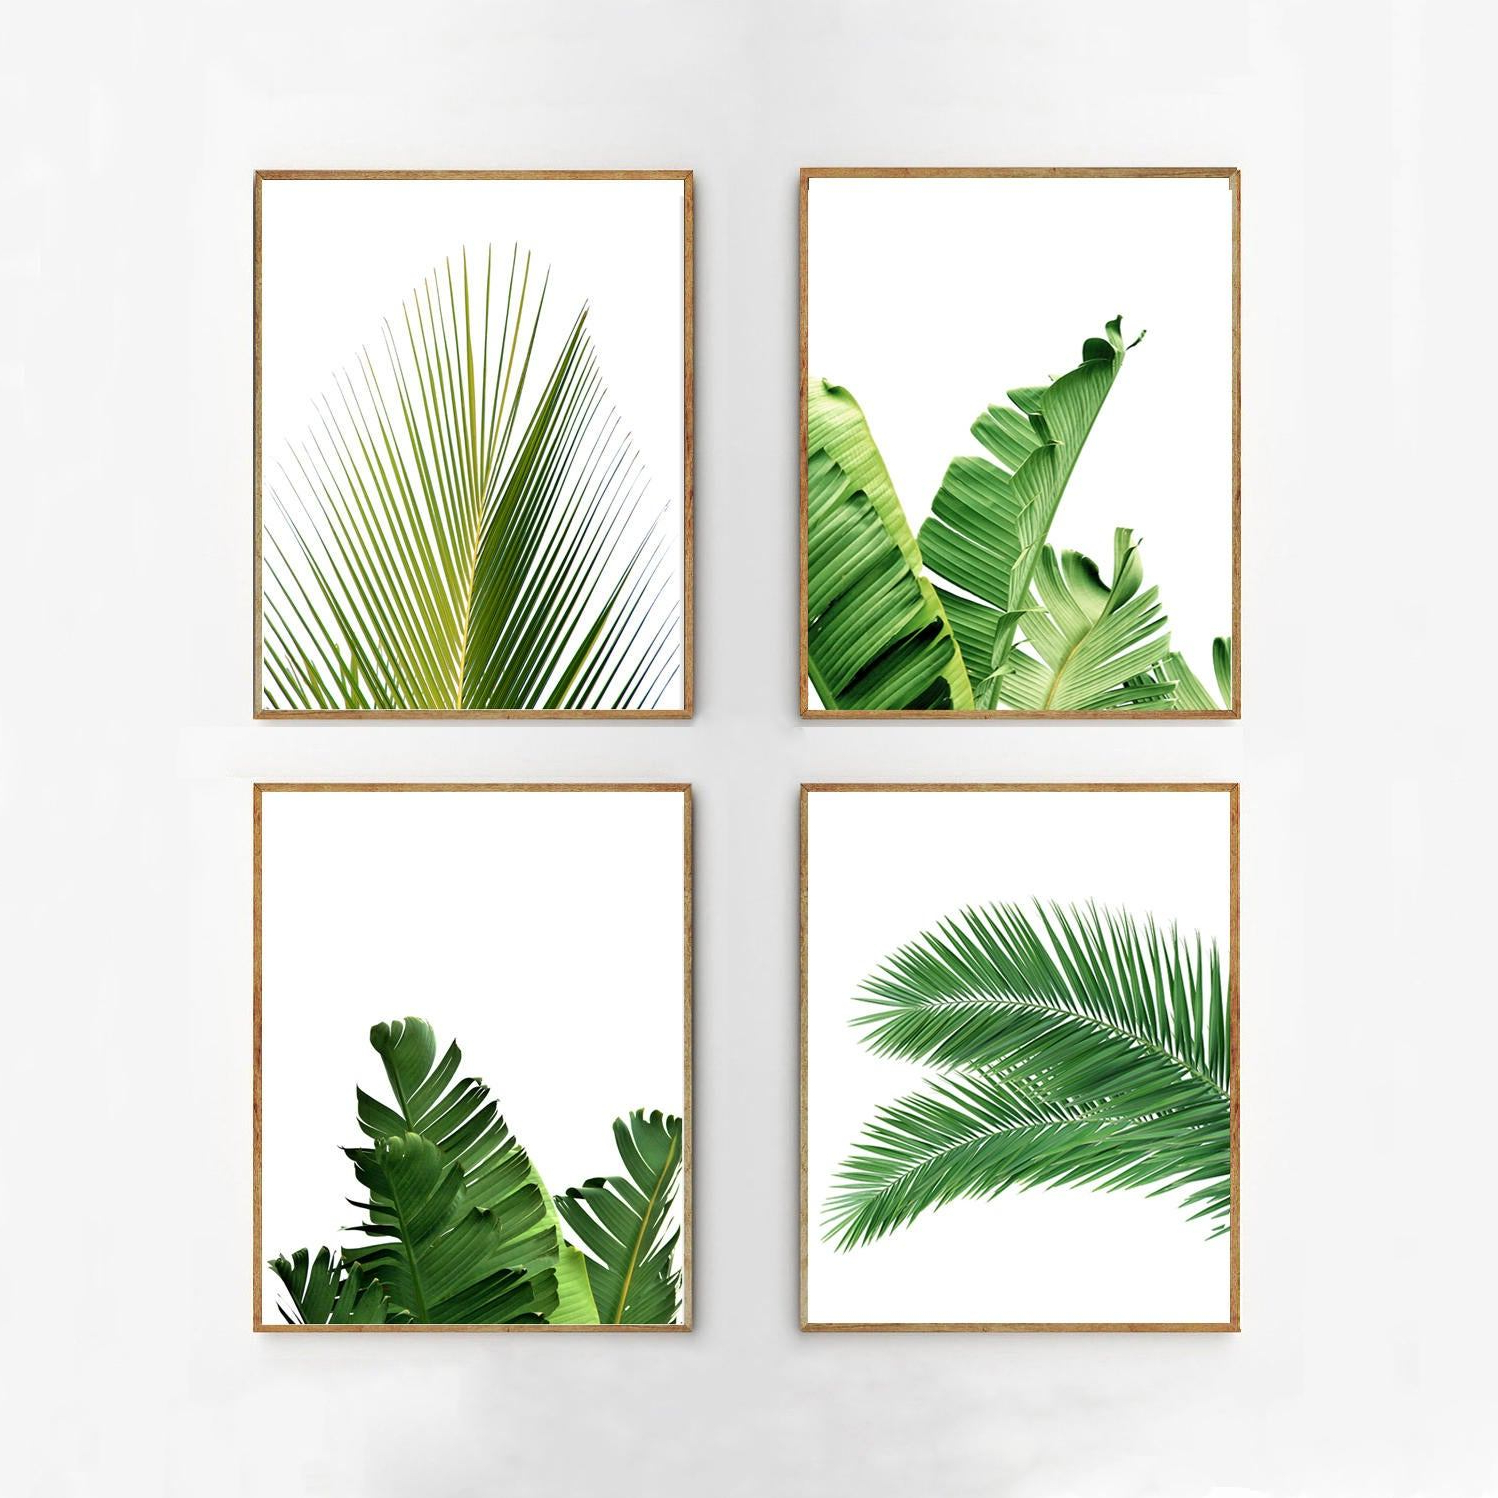 Widely Used Leaf Wall Art – Ronniebrownlifesystems Inside Desford Leaf Wall Decor (View 20 of 20)